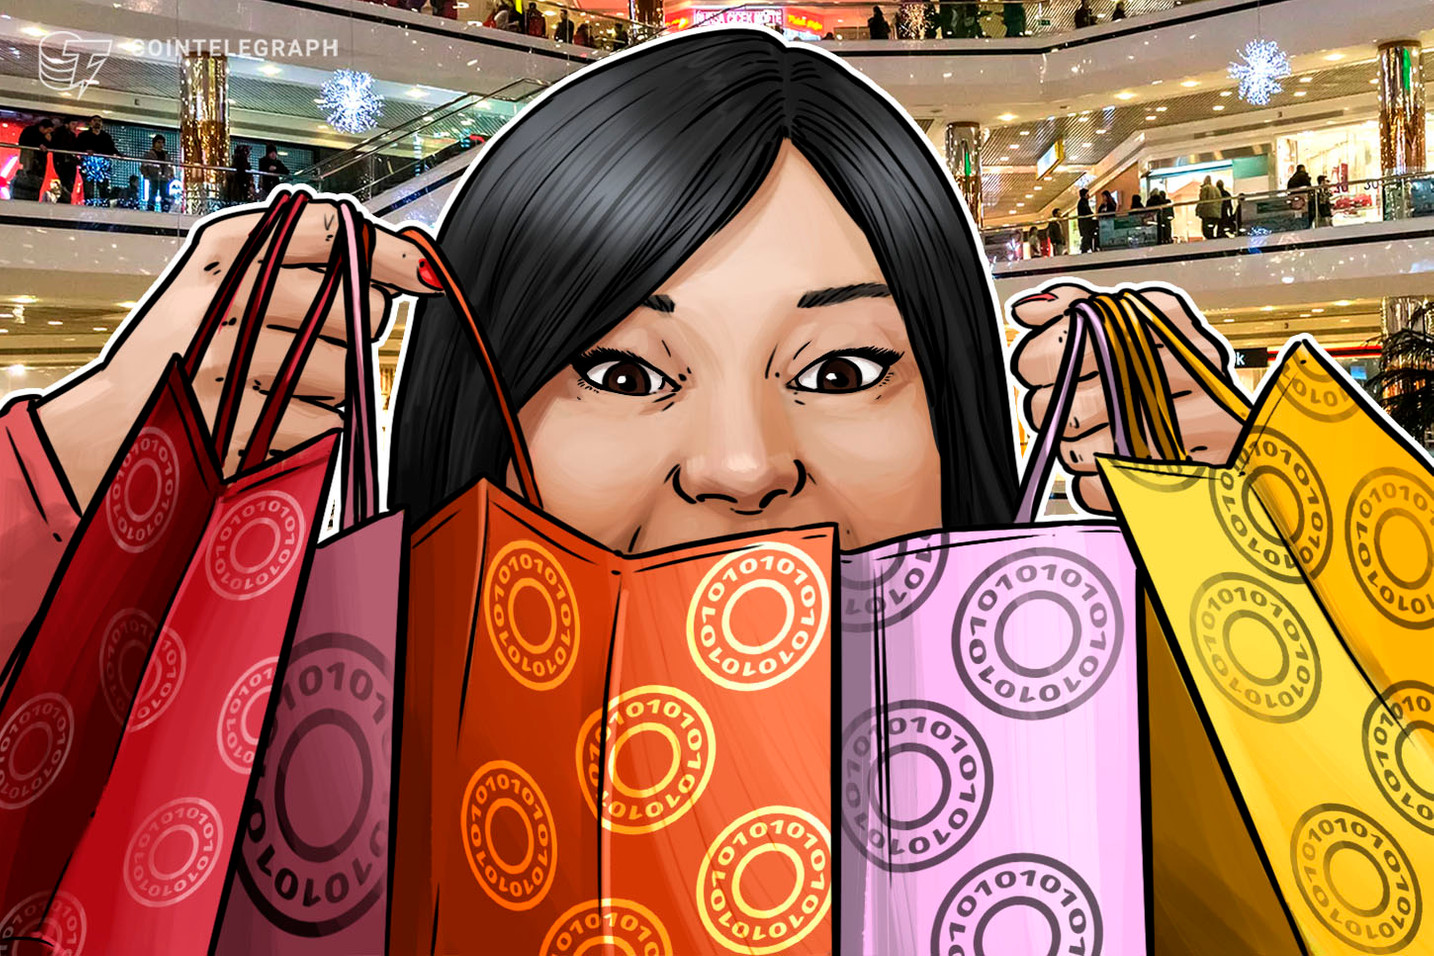 Japan's Financial Services Giant SBI Trials Crypto Token for Retail Purchases